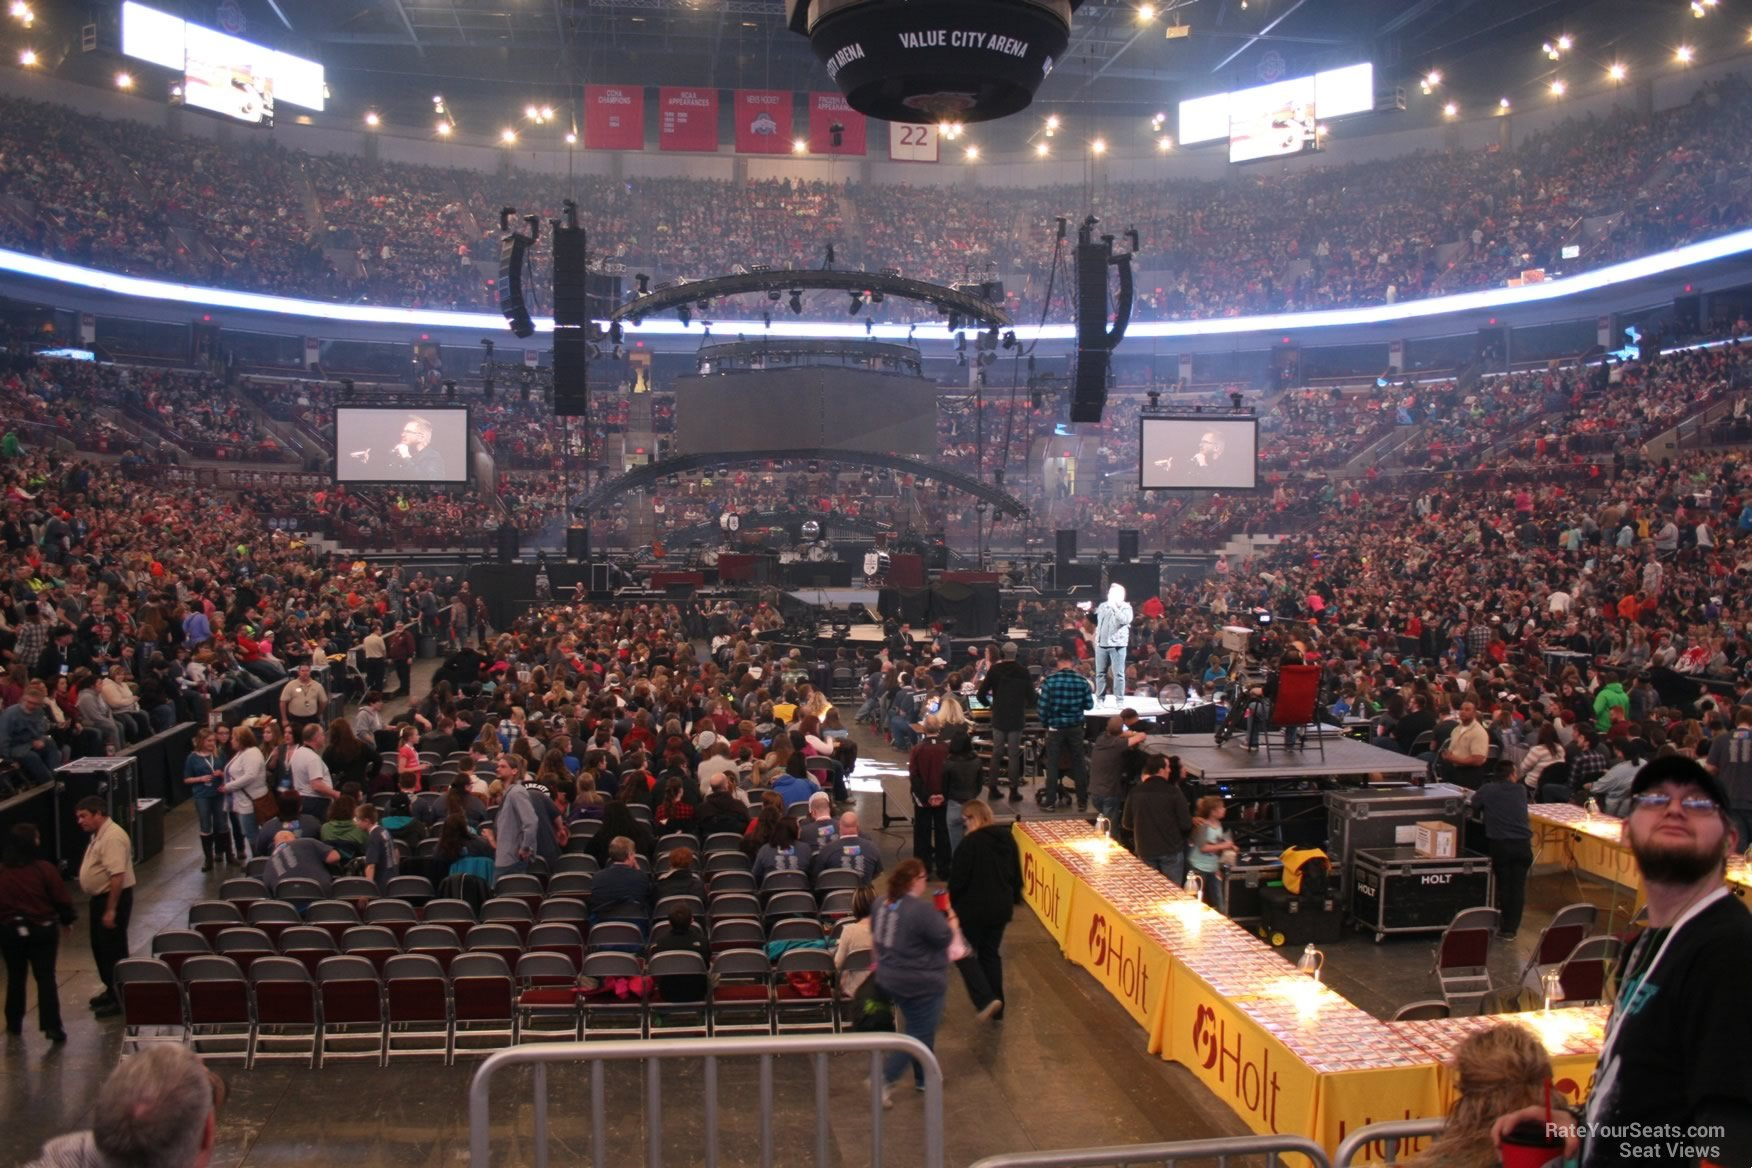 Section 131 Offers A Comfortable Head On View For End Stage Shows